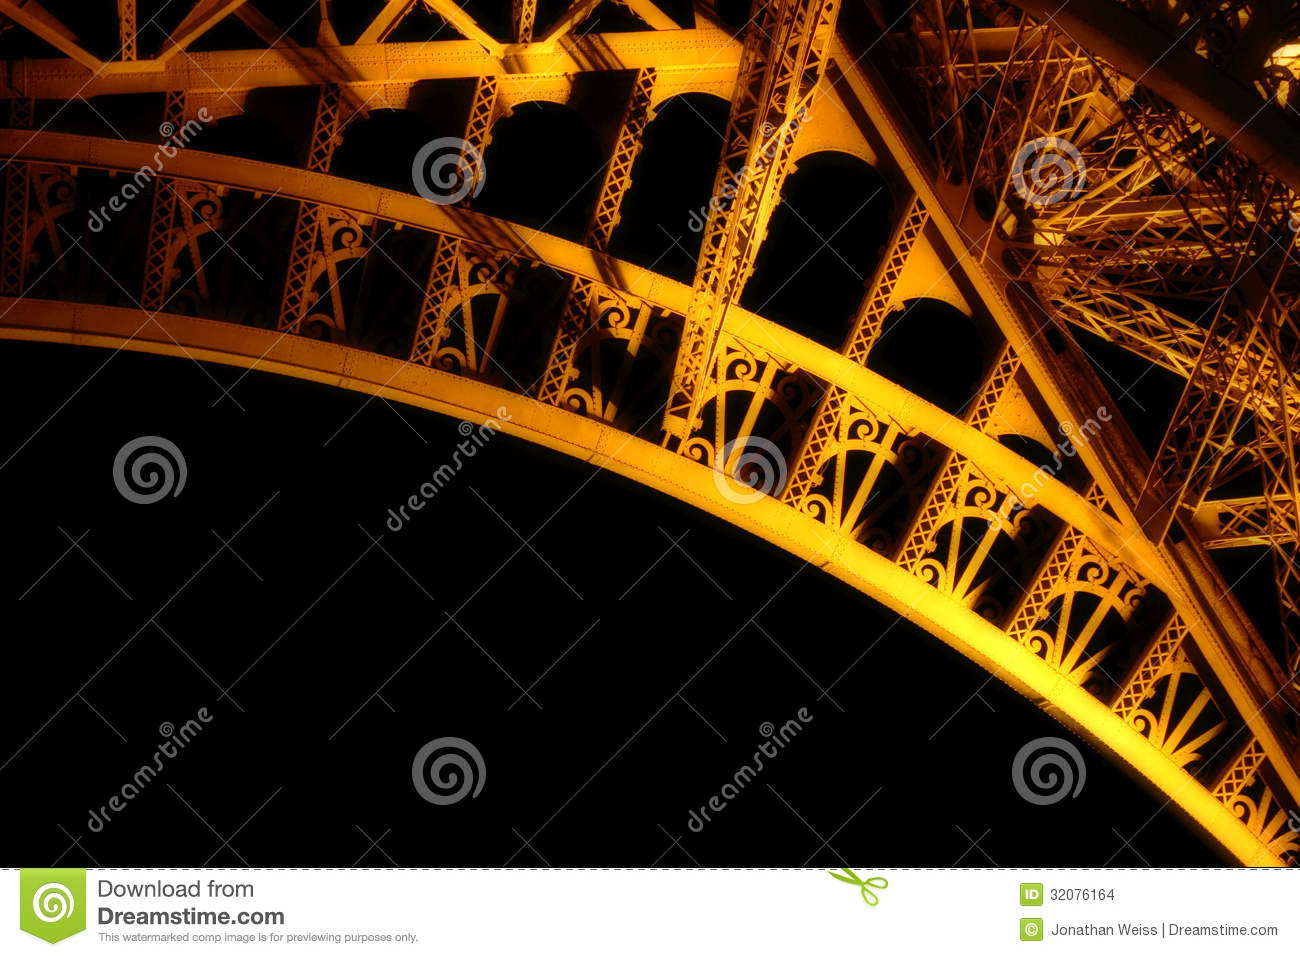 Underside of the Eiffel Tower at Night